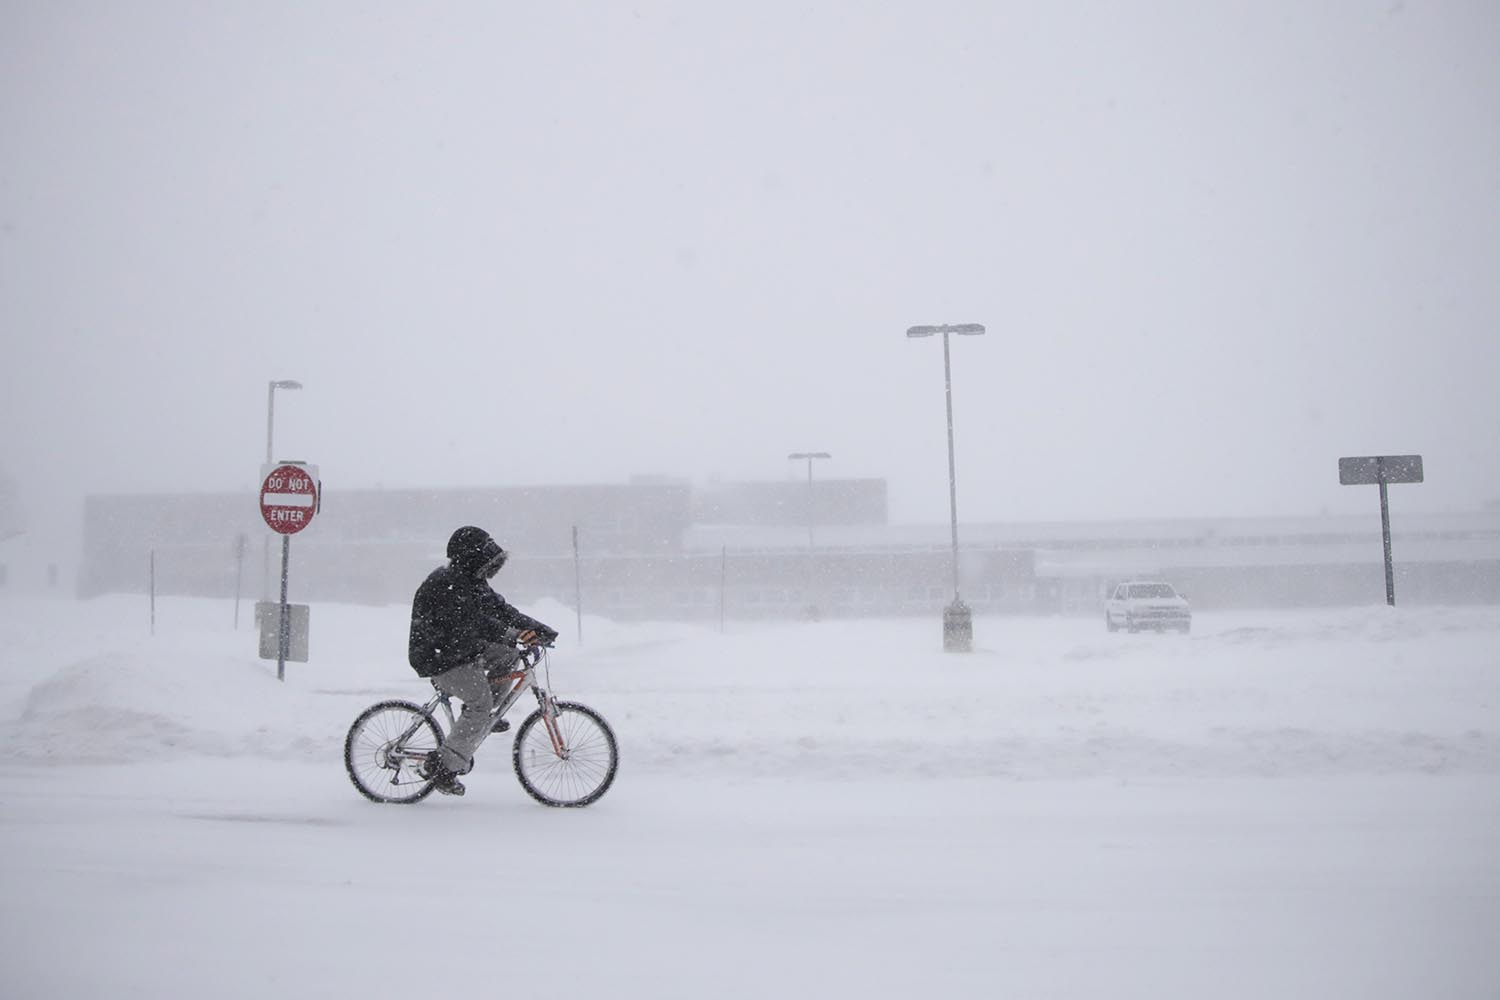 "<div class=""meta image-caption""><div class=""origin-logo origin-image ap""><span>AP</span></div><span class=""caption-text"">Justin Hartman rides his bicycle along New Bedford Road in whiteout conditions during a snowstorm, Thursday, Jan. 4, 2018, in Wall Township, N.J. (AP Photo/Julio Cortez)</span></div>"